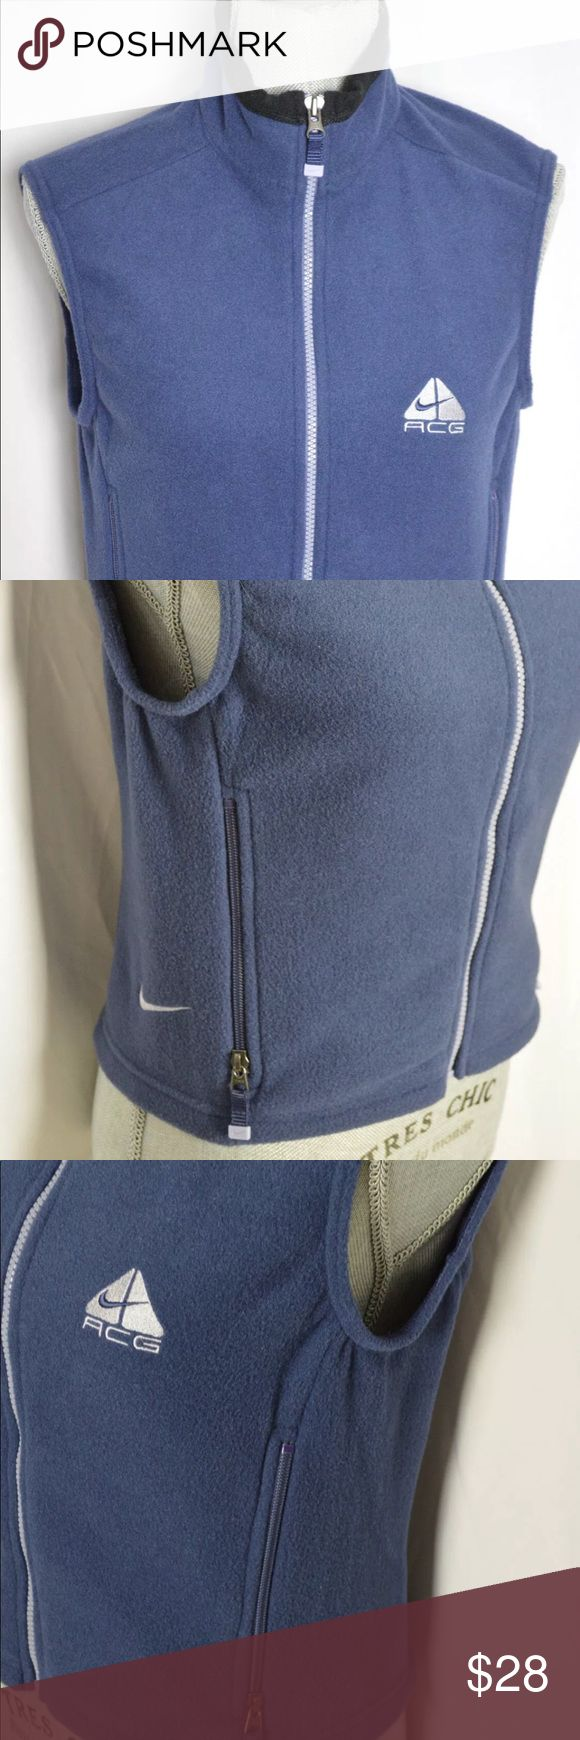 "Womens Nike ACG Polartec fleece jacket Size Small An excellent condition Womens Nike ACG Polartec blue short sleeve fleece jacket. Size Small.  Dimensions:-  Size:- Small Length:- 19"" Chest:- 17.75"" Shoulder:- 15.5""  Thanks for viewing! Nike ACG Jackets & Coats Vests"